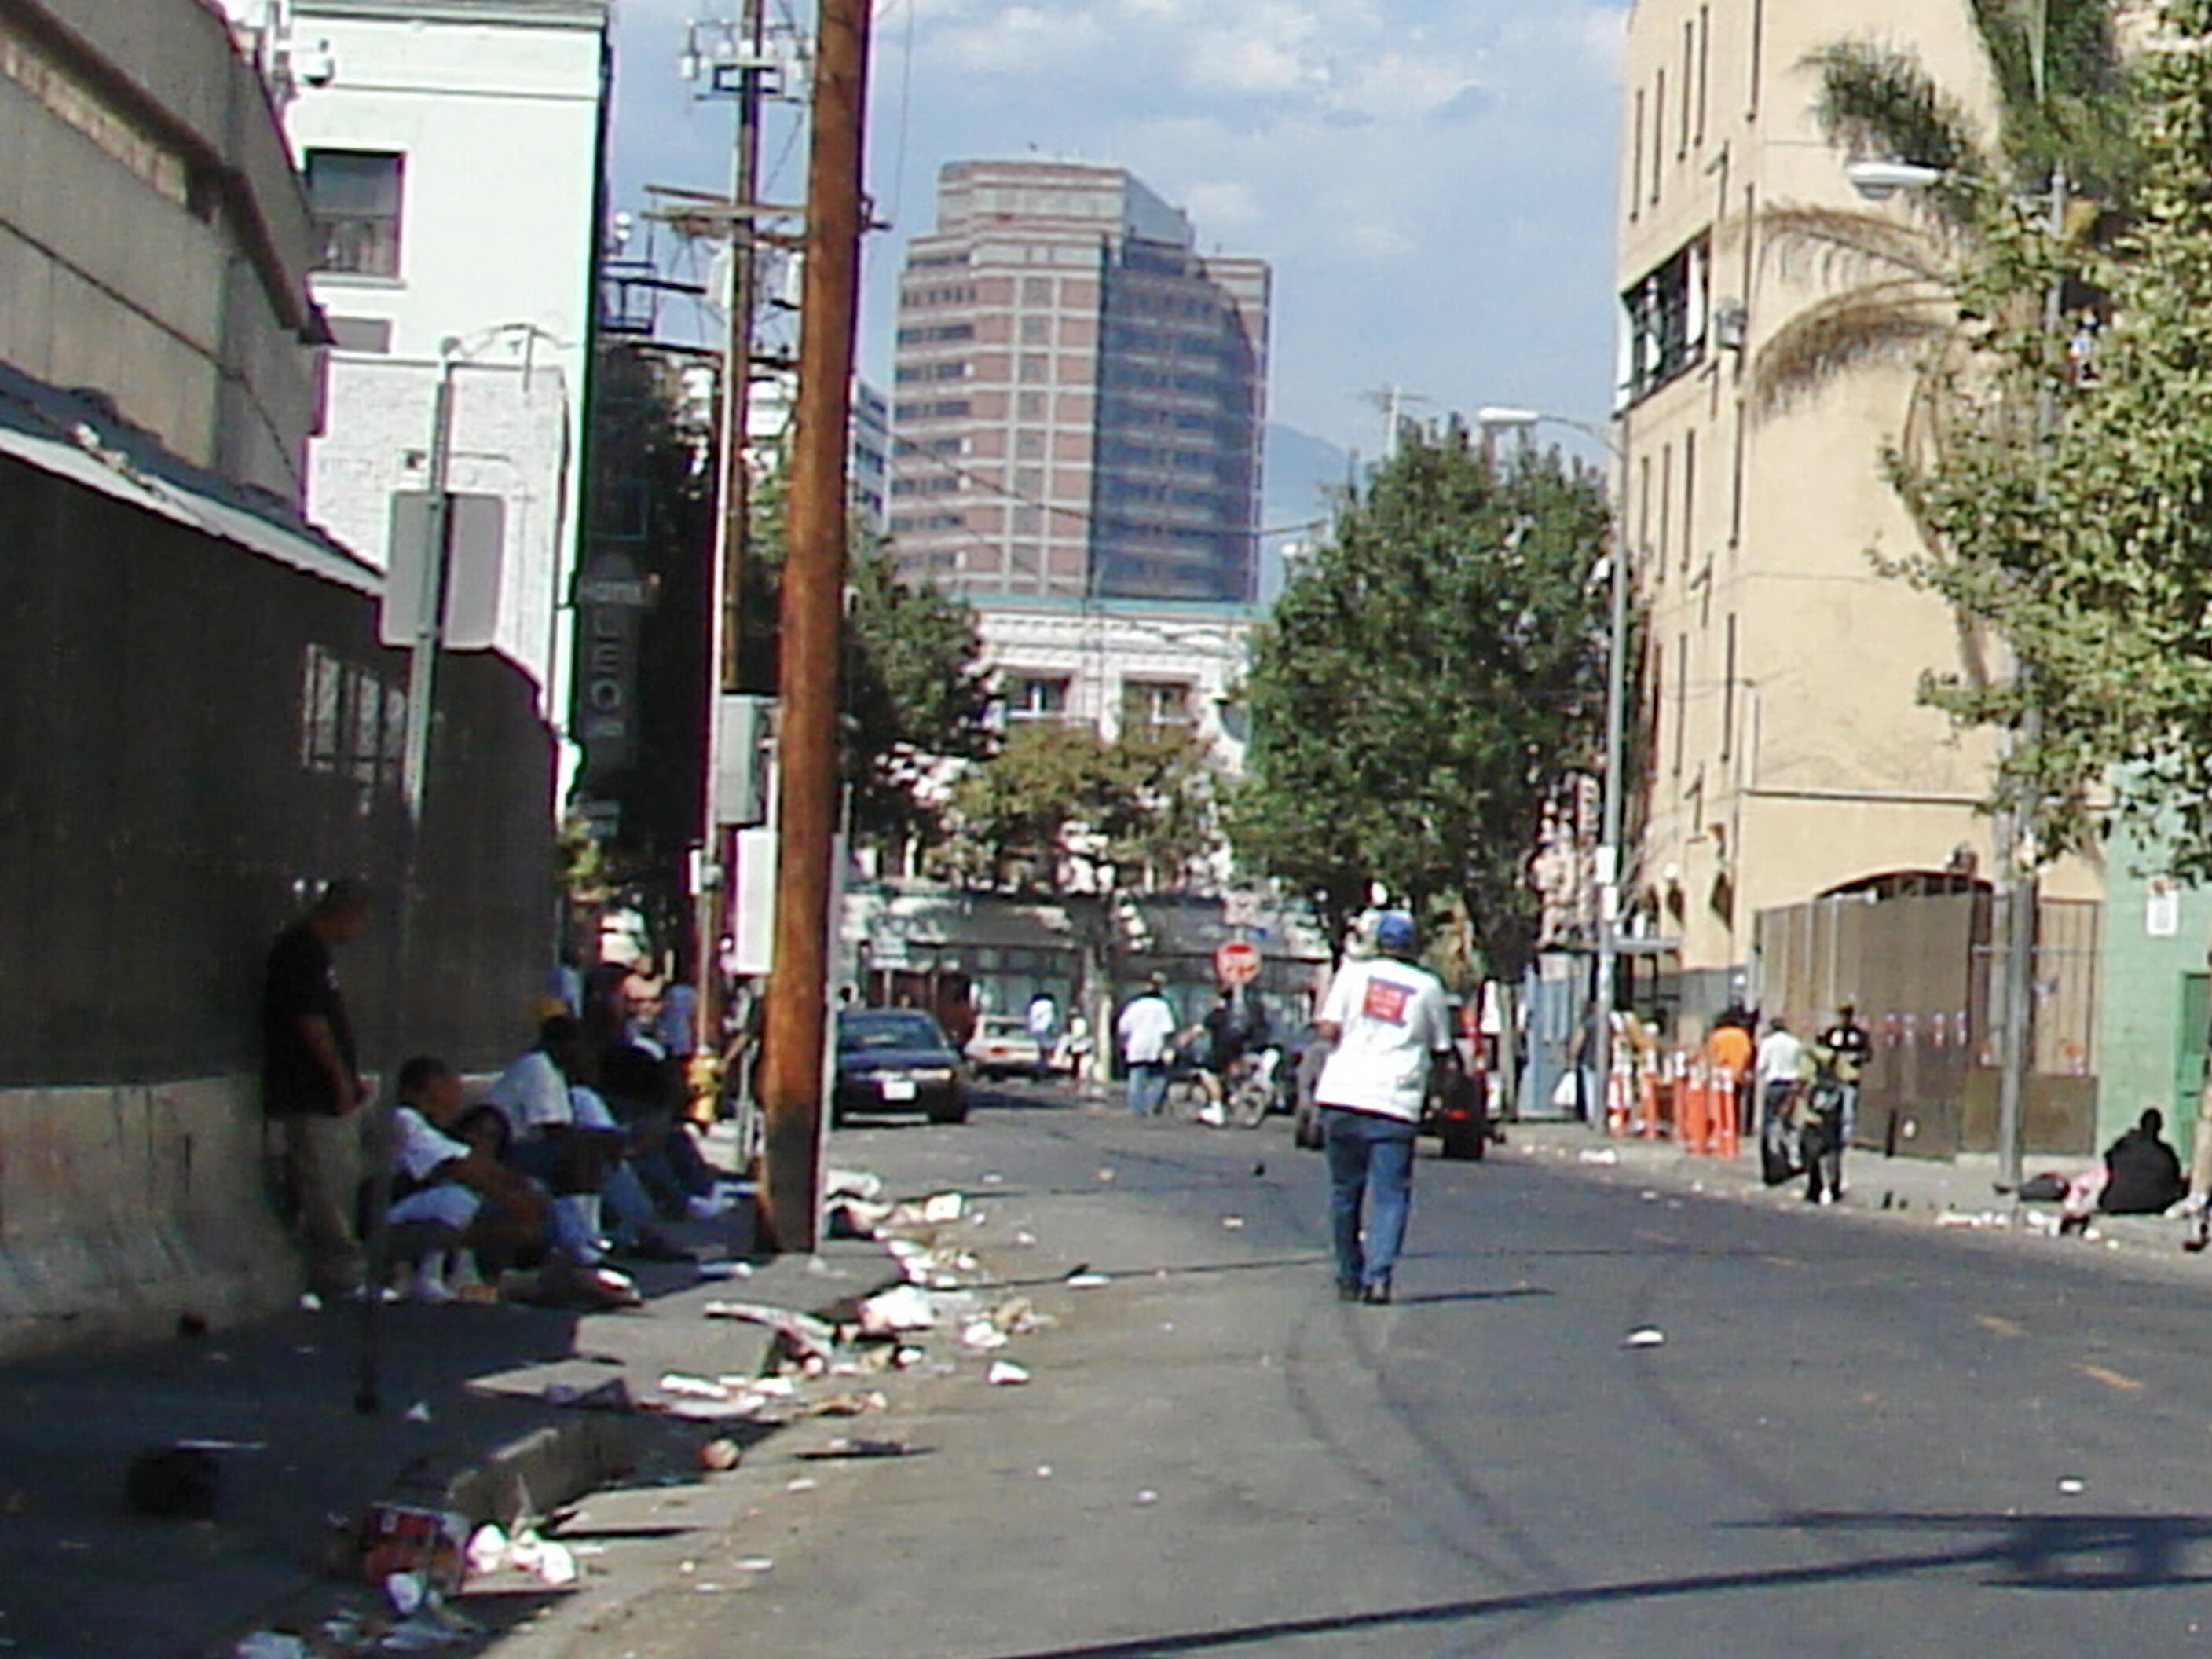 http://upload.wikimedia.org/wikipedia/commons/3/3b/Los_Angeles_Skid_Row.jpg